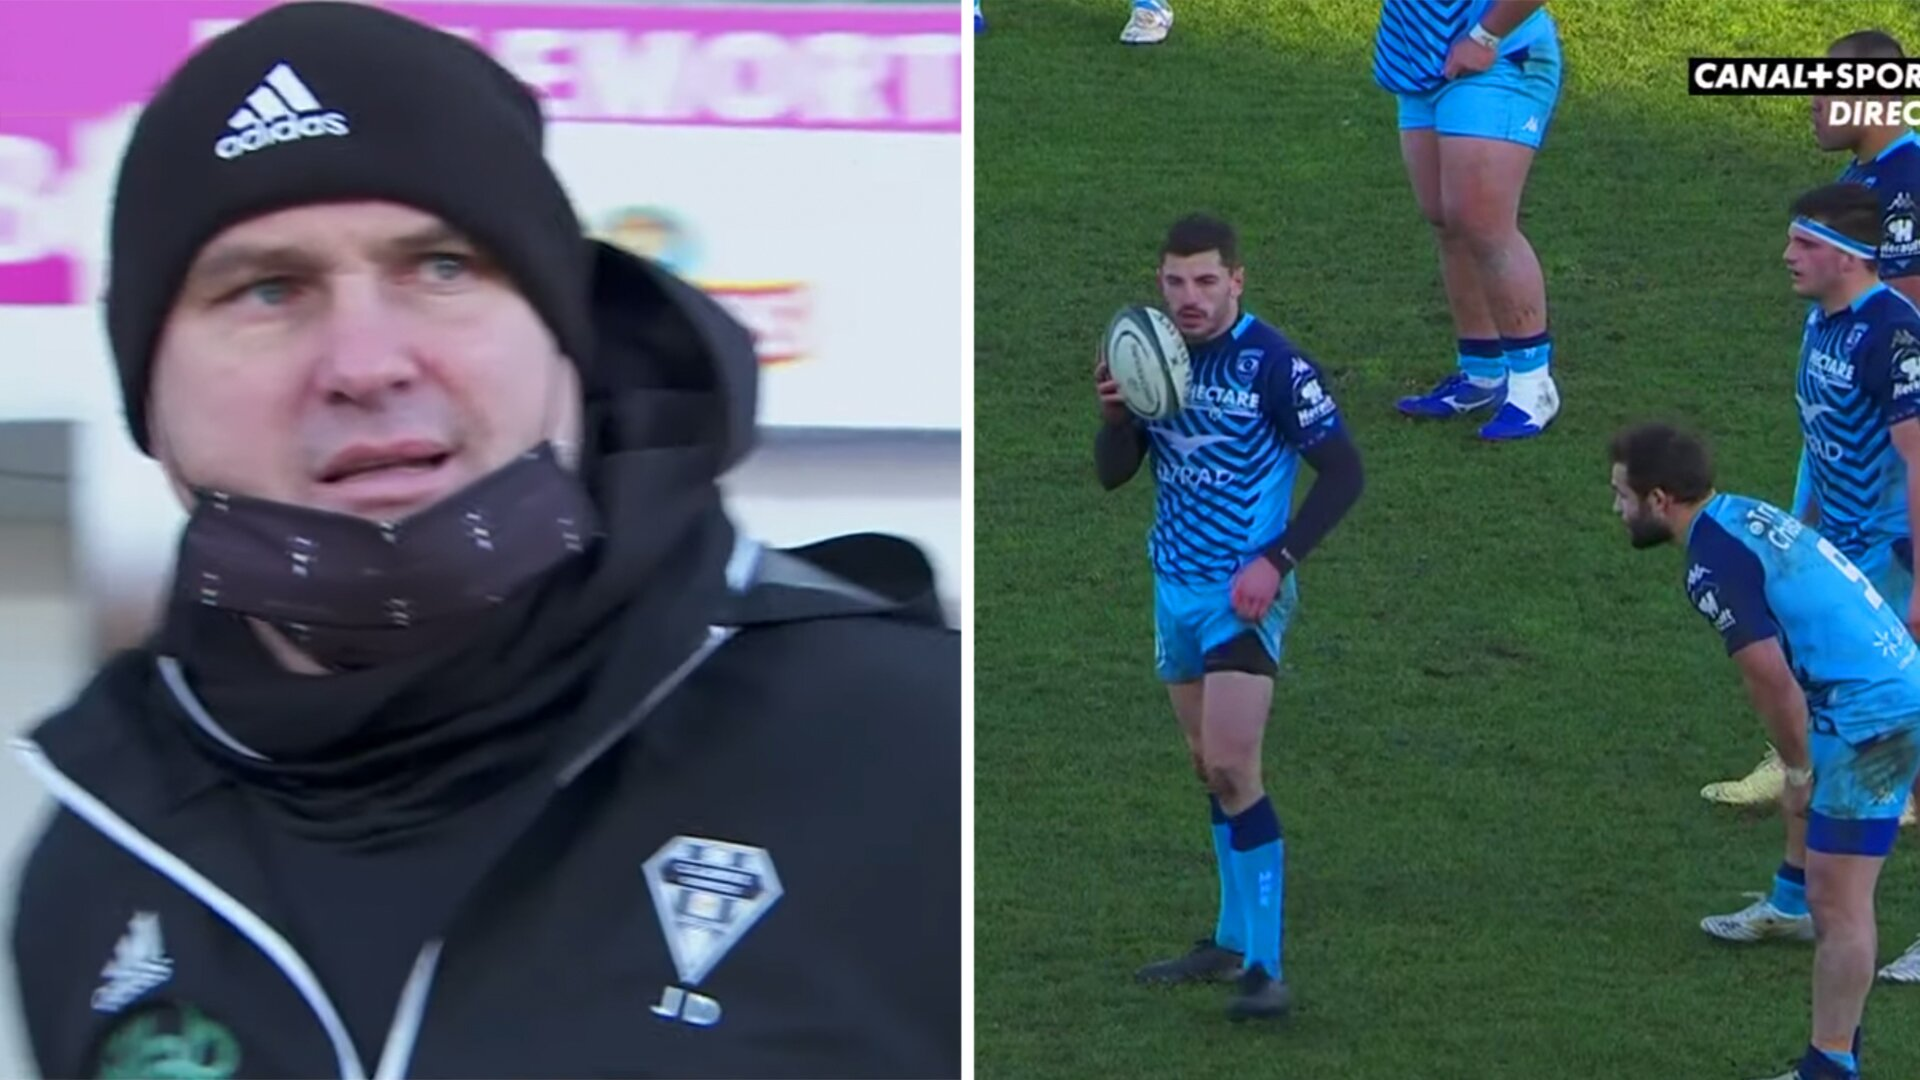 Final moments of Top 14 clash between Brive and Montpellier prove why it's best league in rugby